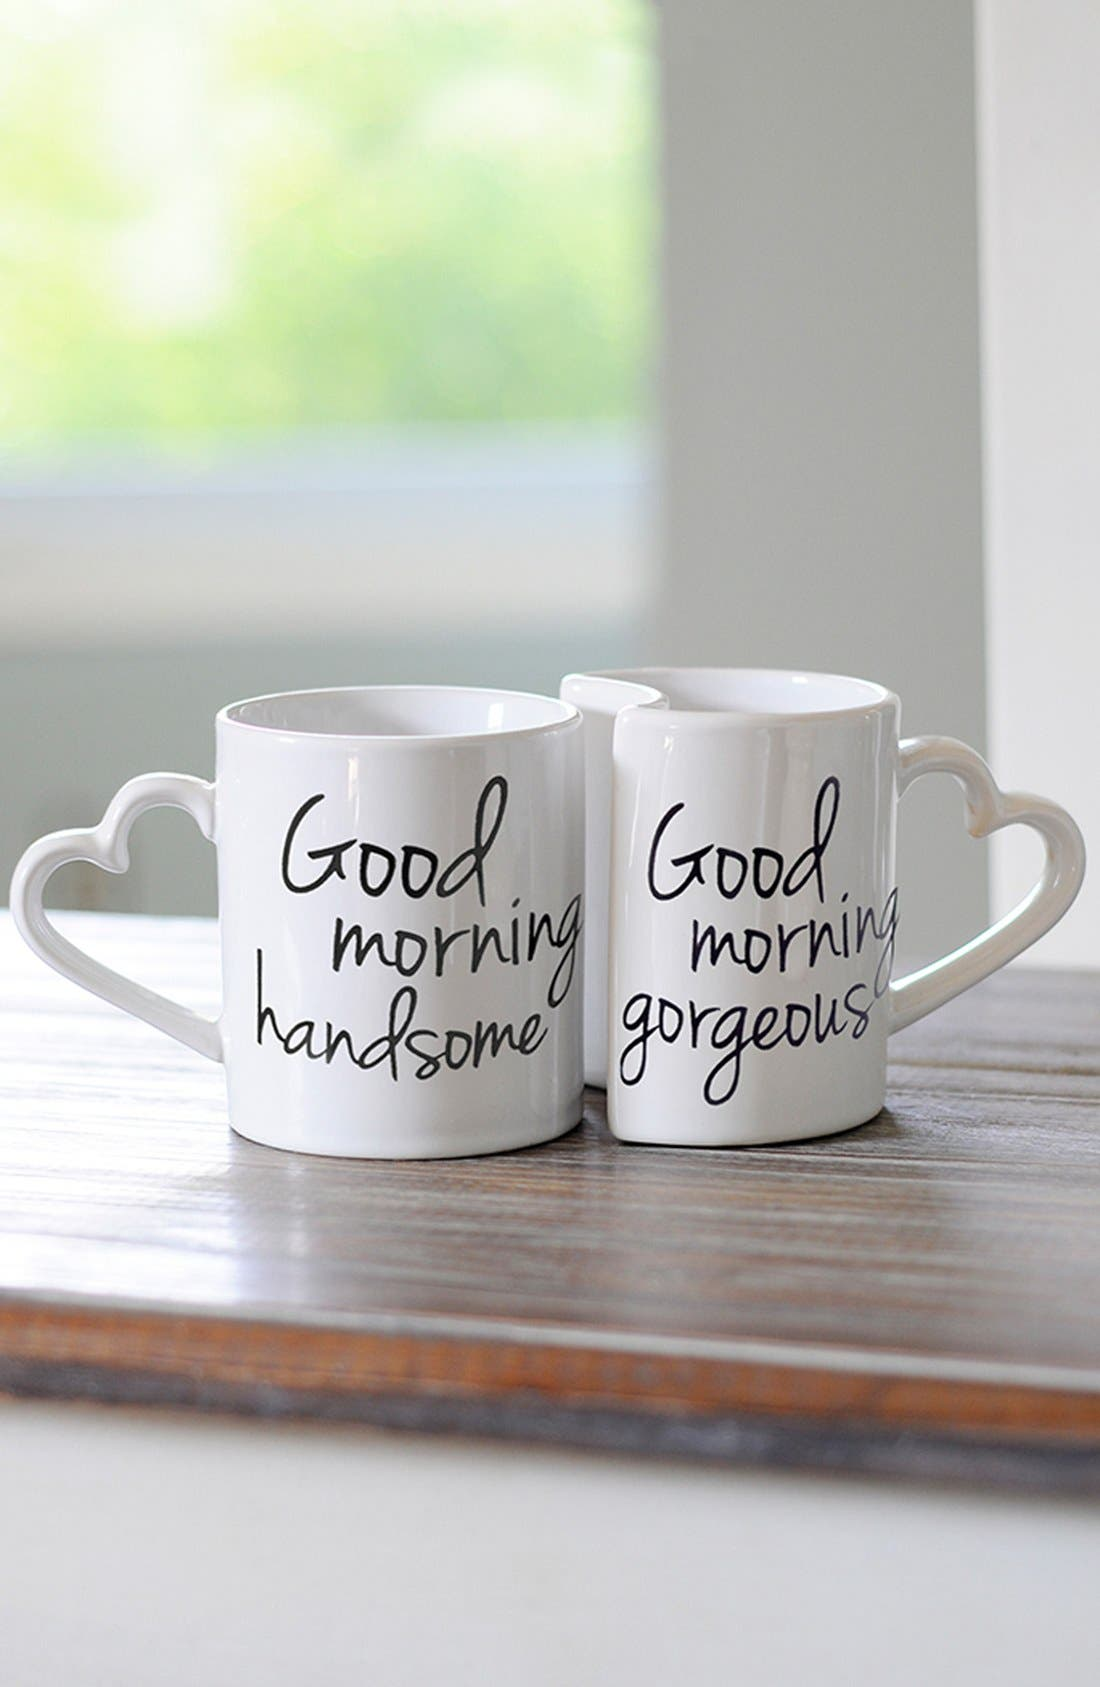 Cathy's Concepts 'Good Morning' Ceramic Coffee Mugs (Set of 2)